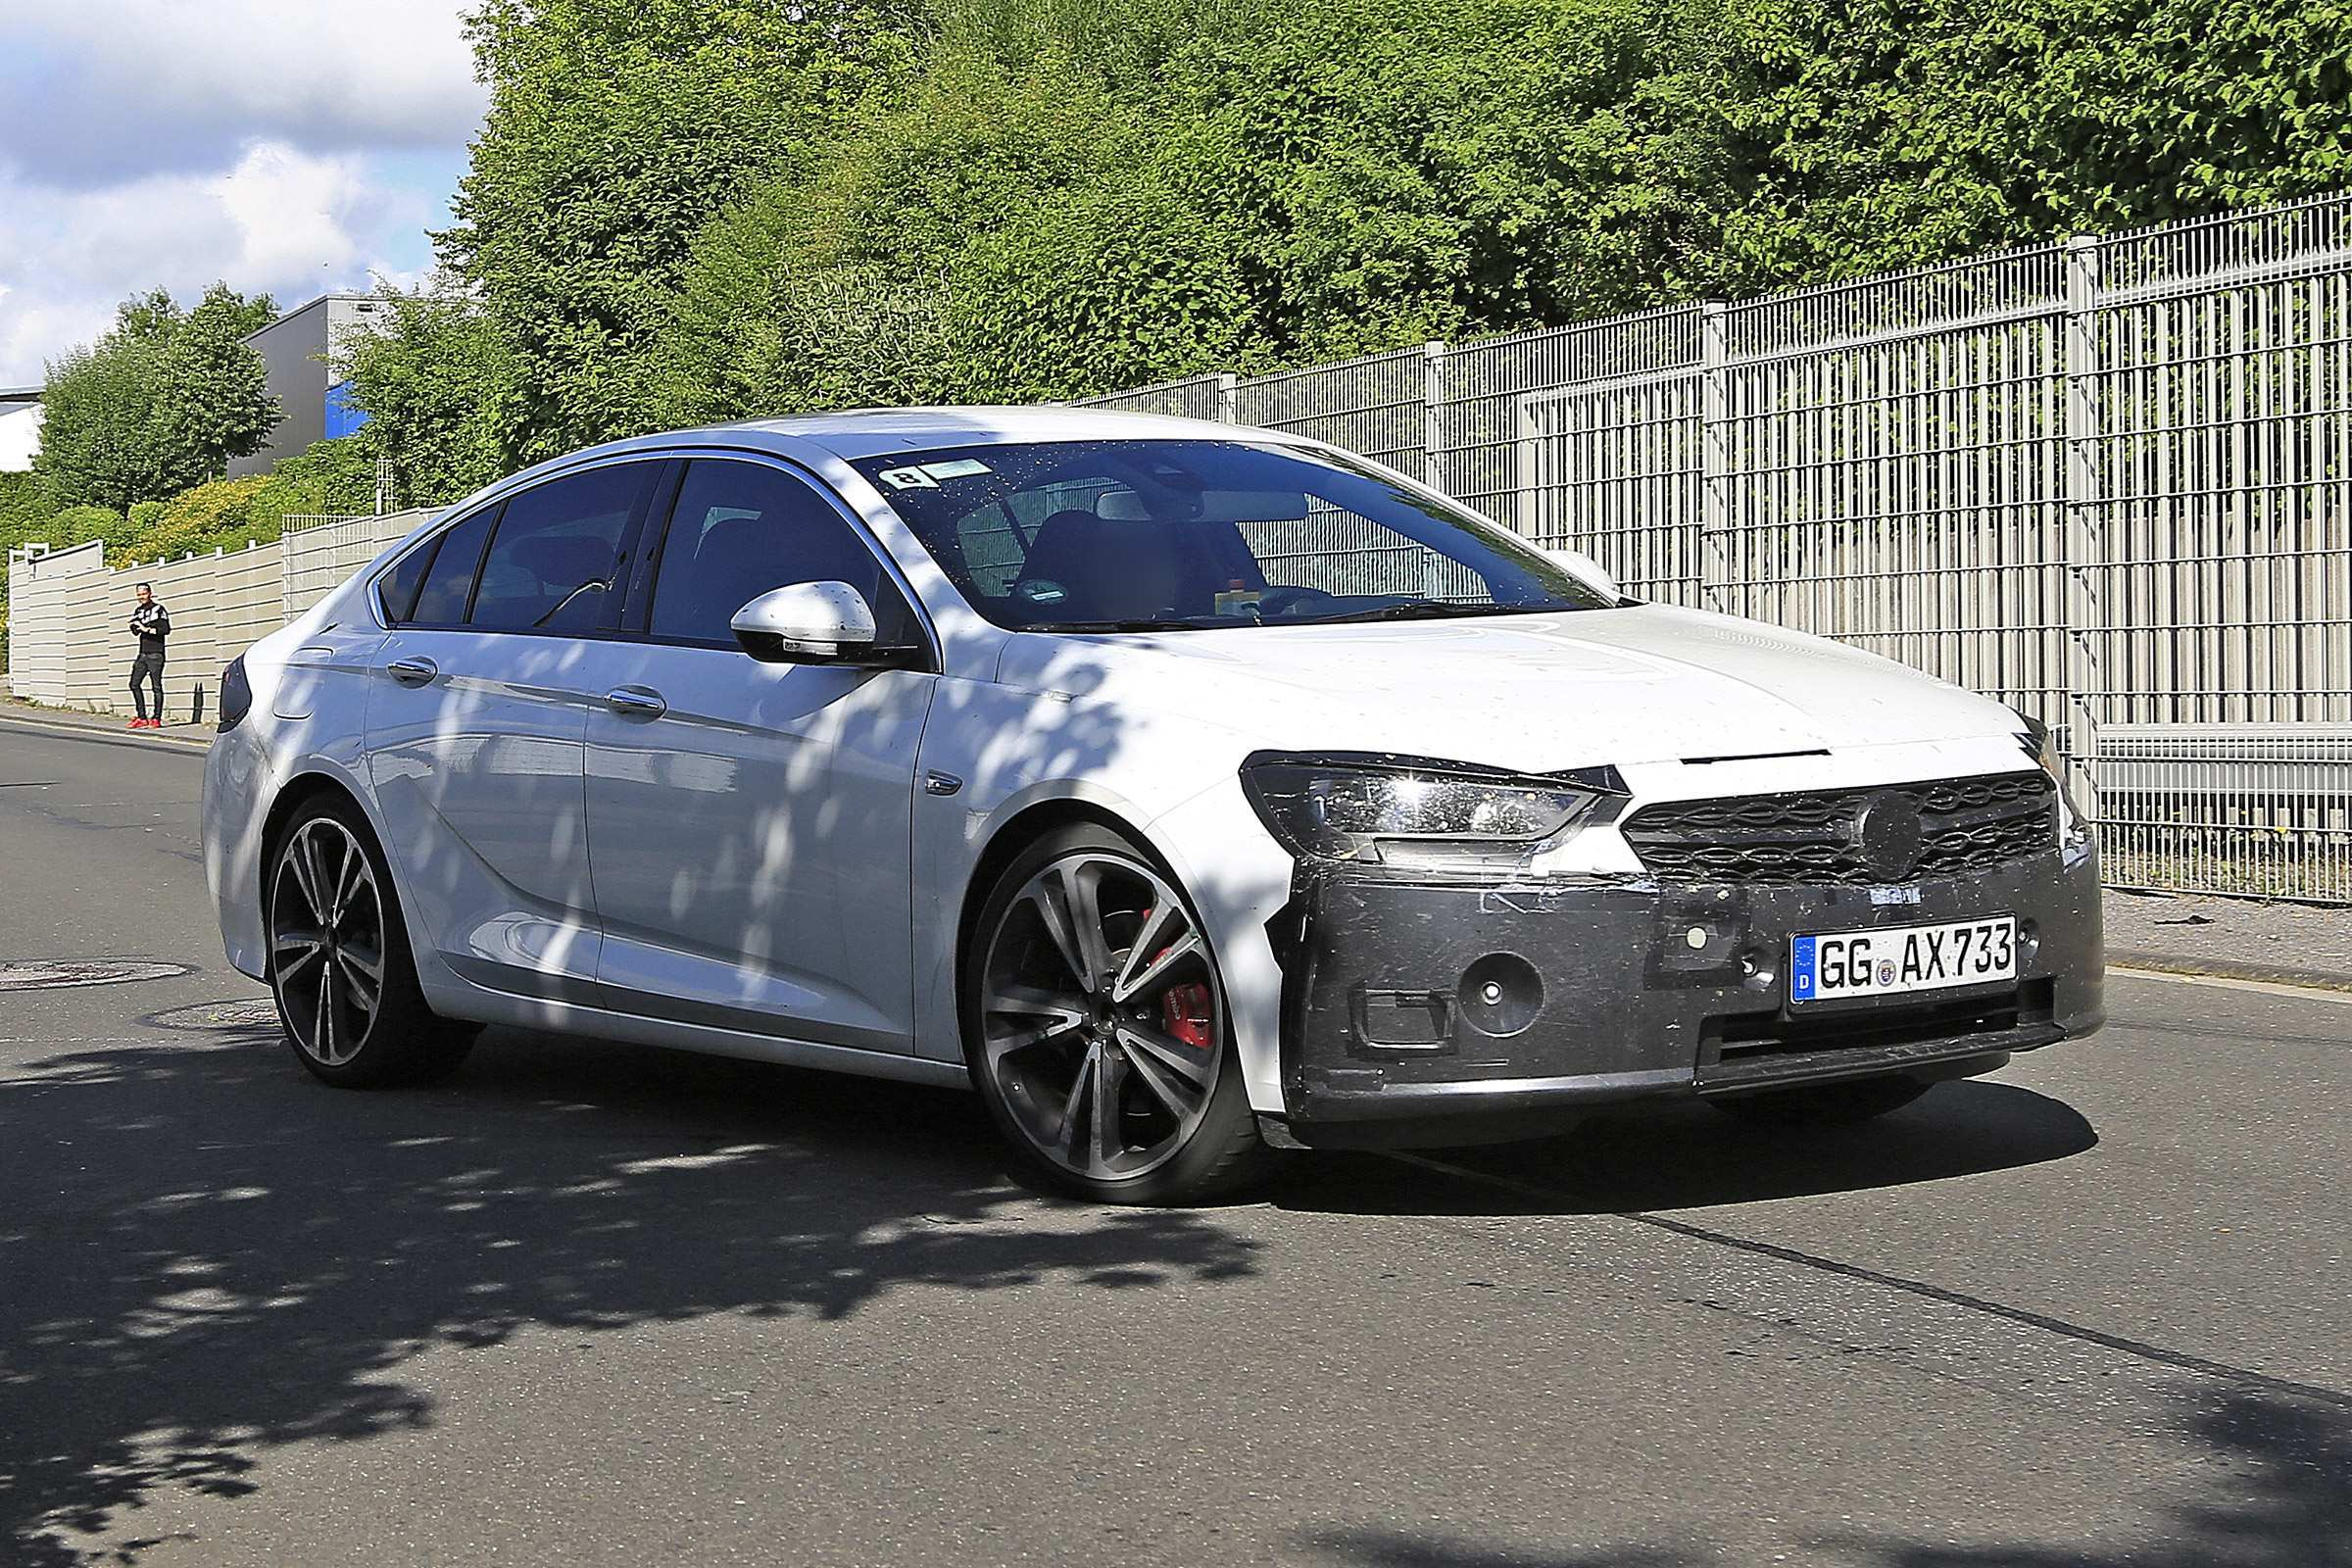 34 Gallery of Opel Insignia Facelift 2020 Spy Shoot by Opel Insignia Facelift 2020